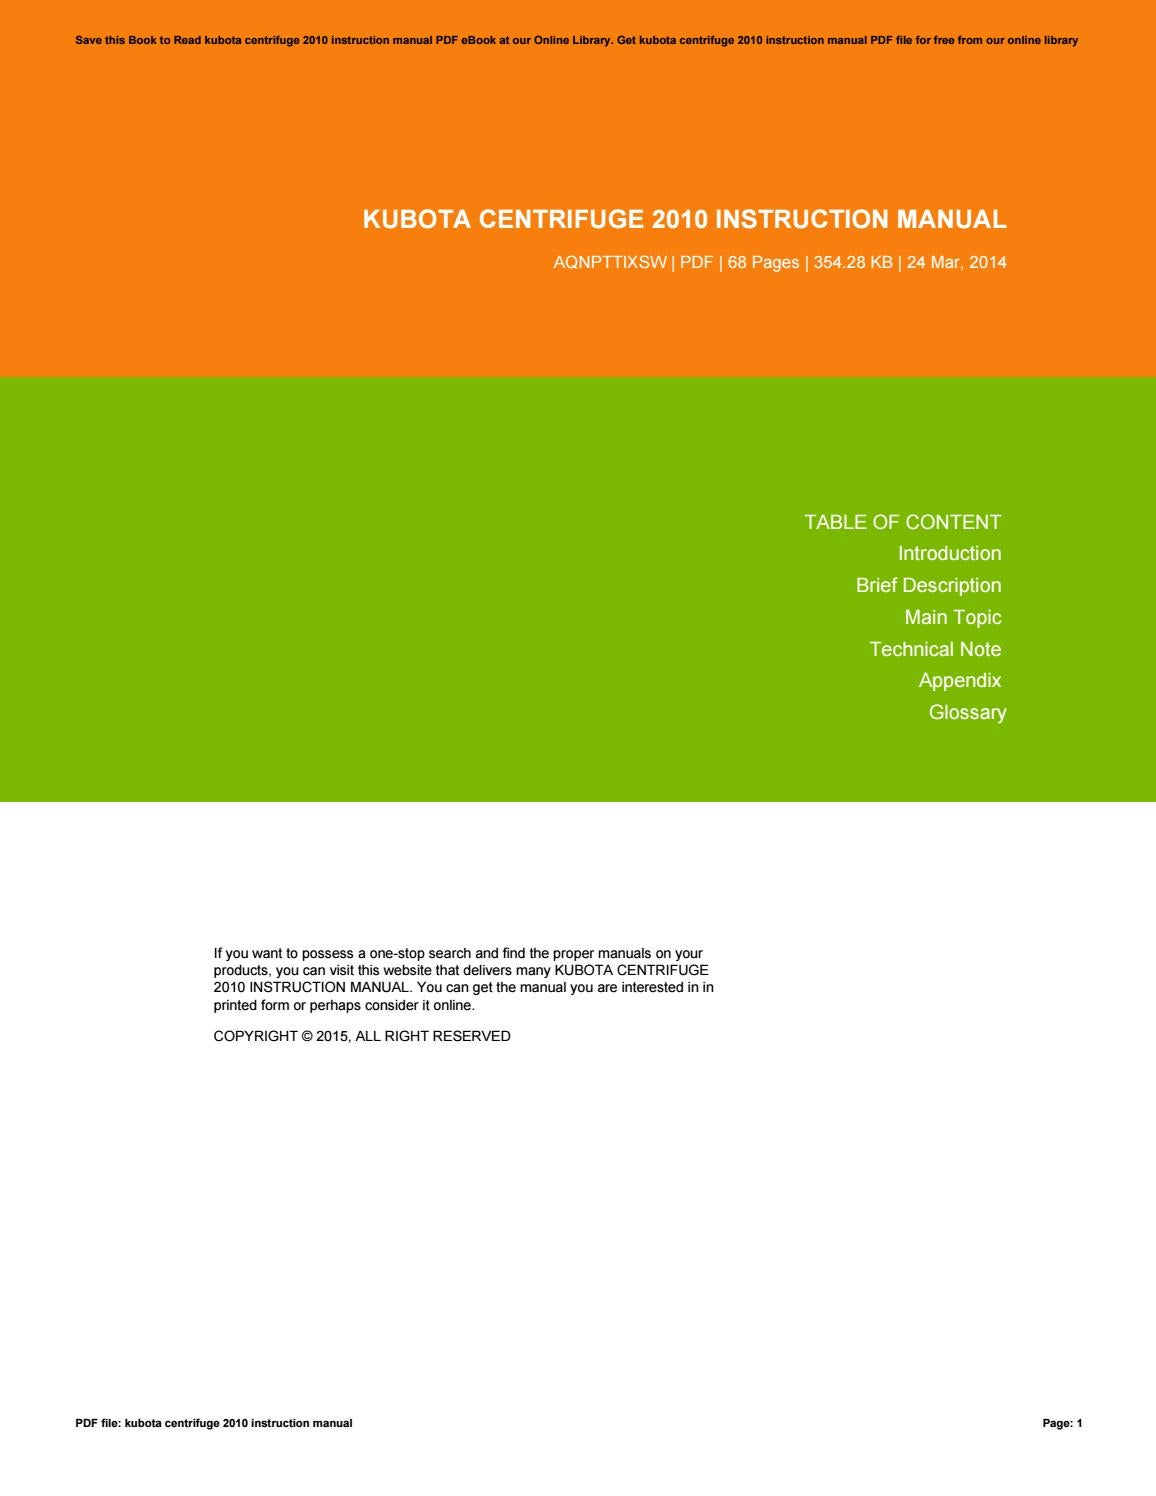 kubota owners manuals online